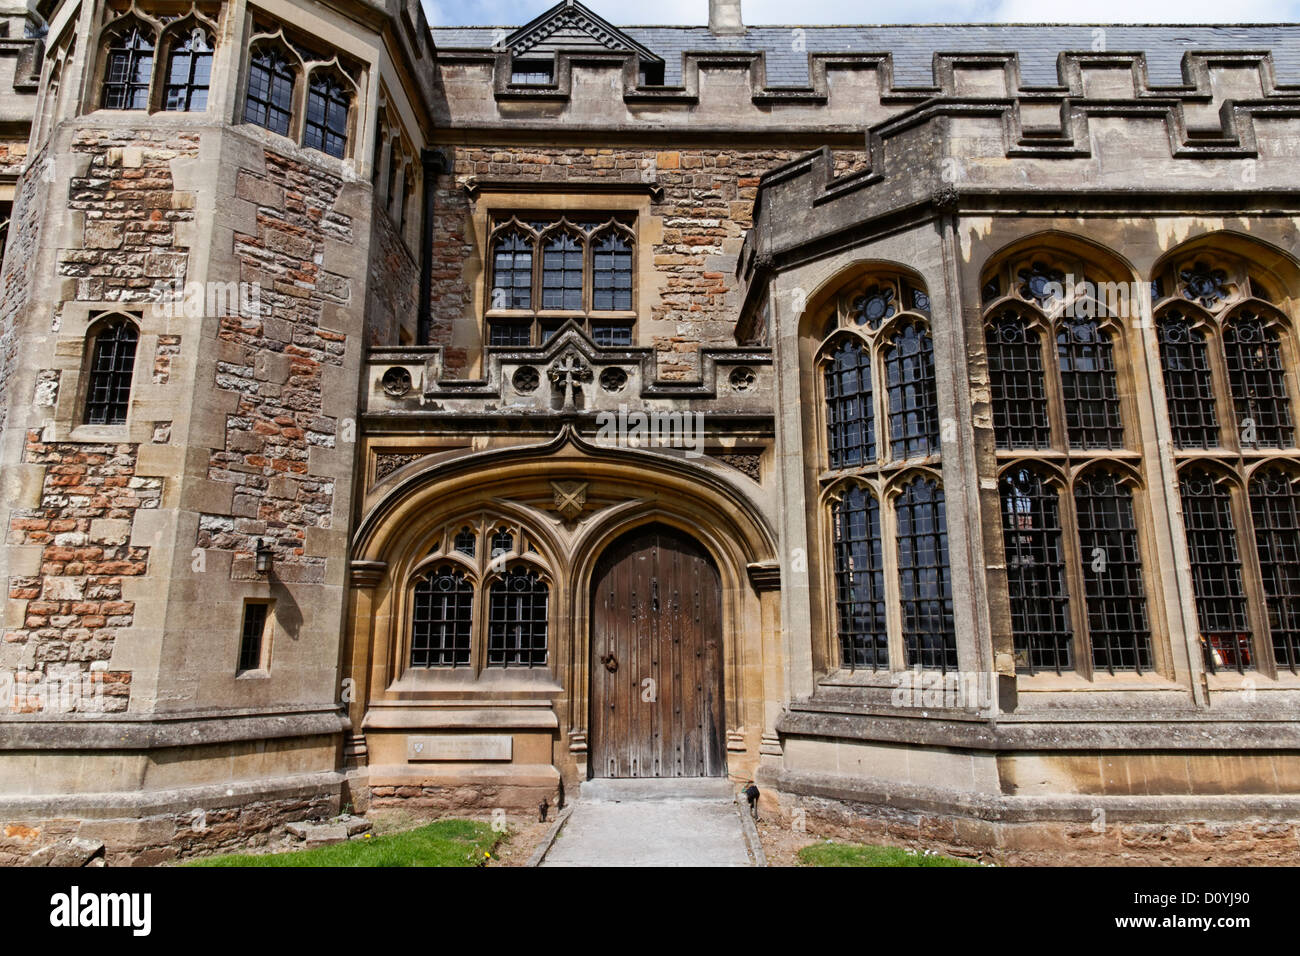 The Music Faculty, Wells Cathedral School, Wells, Somerset, England - Stock Image